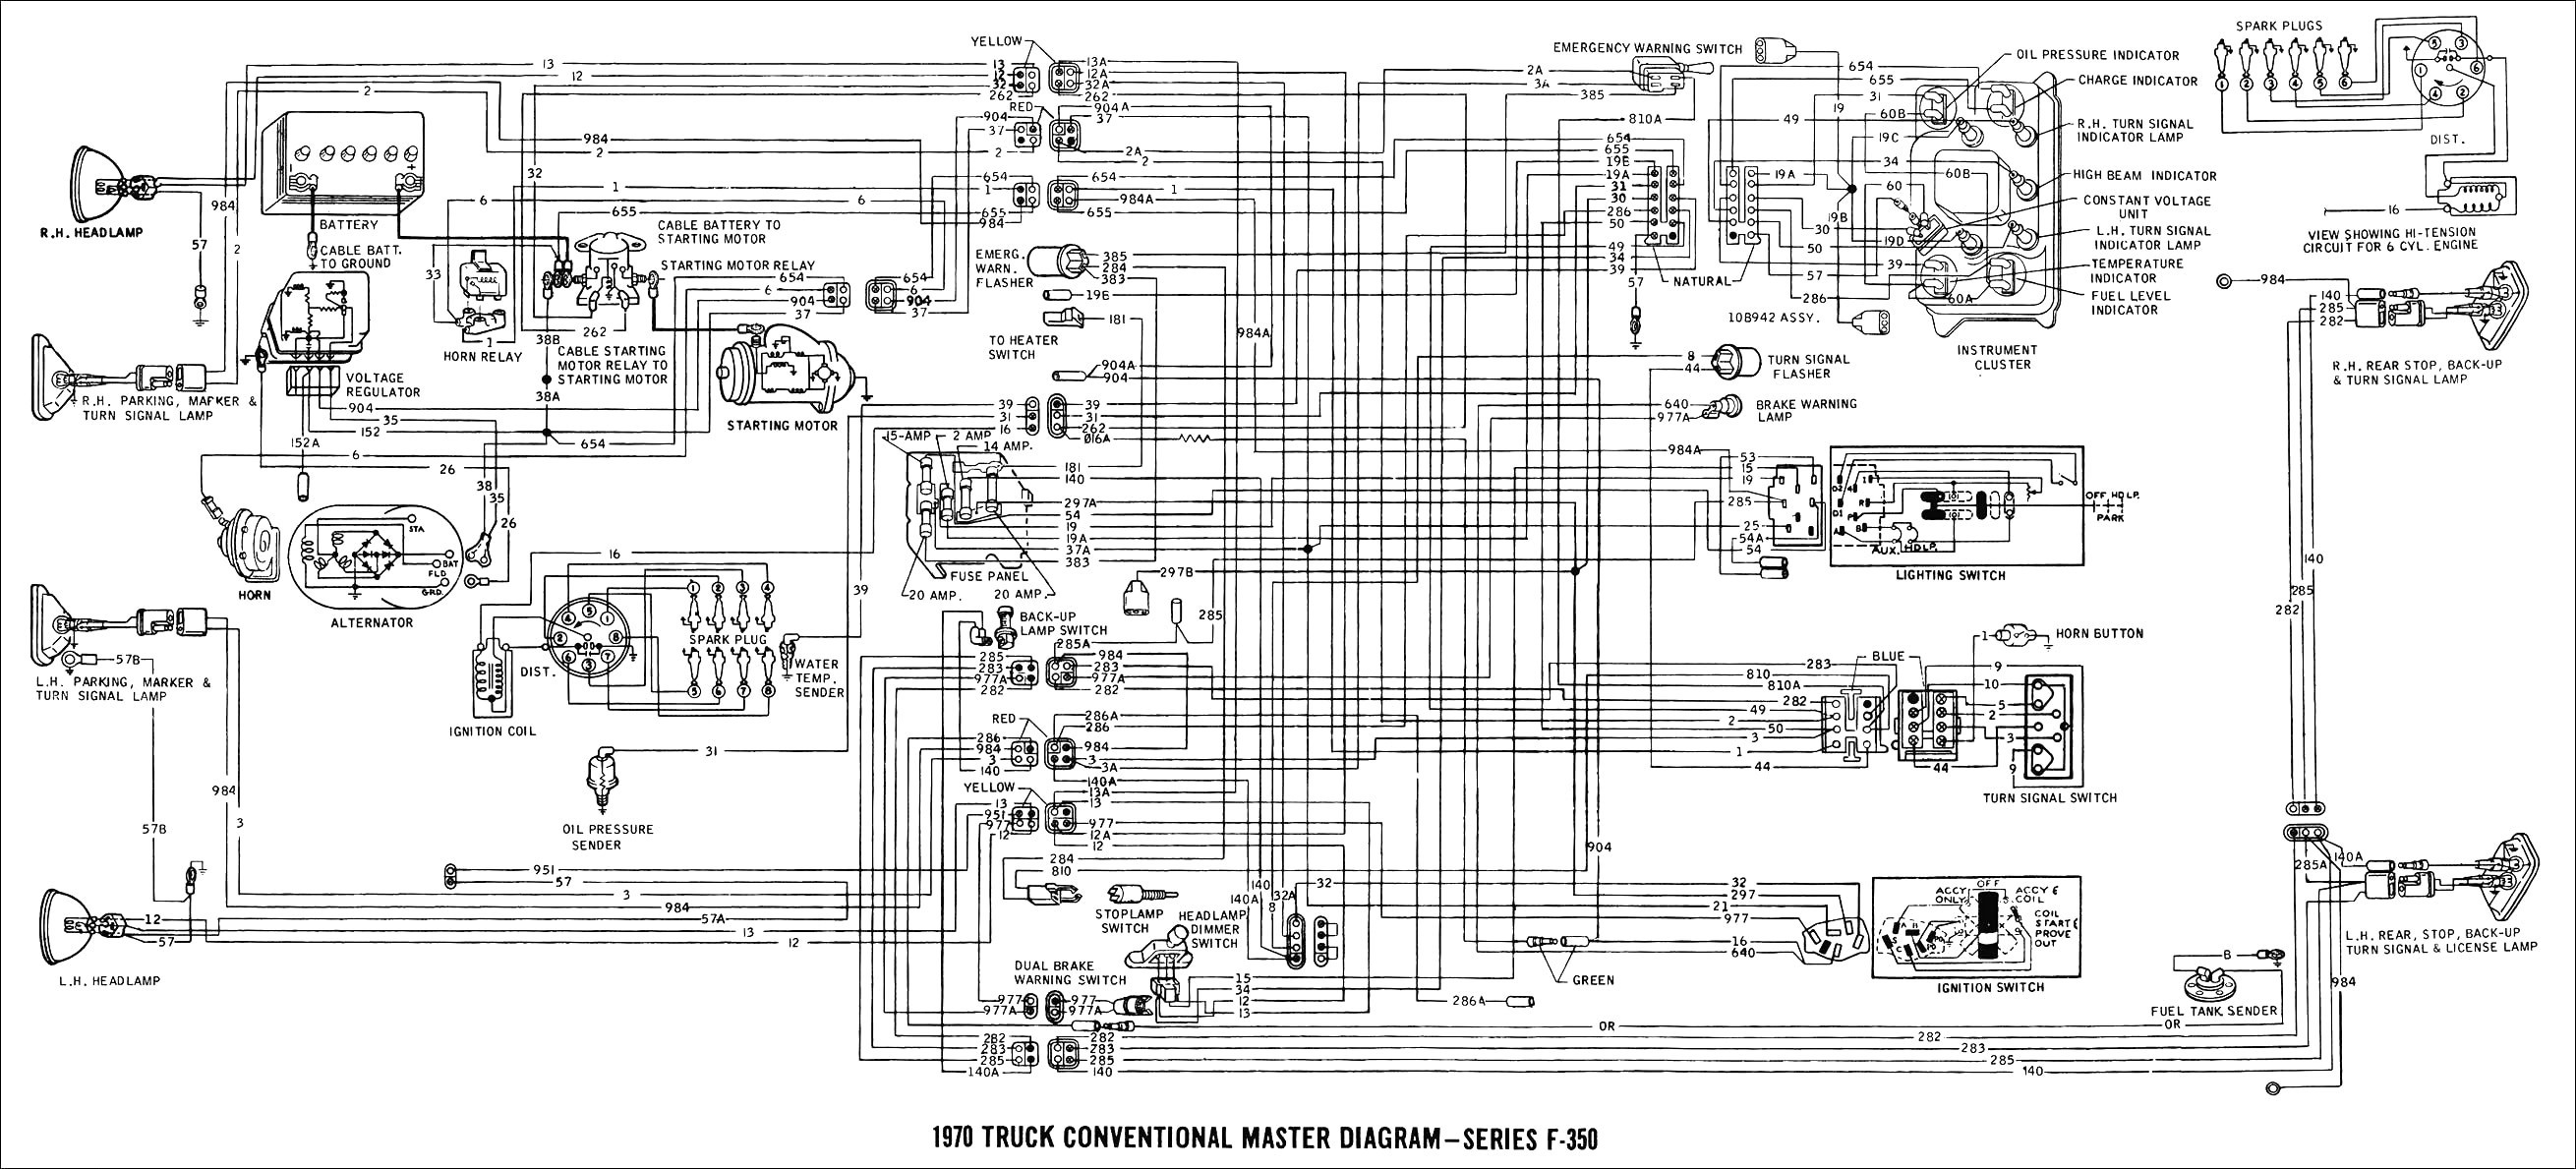 2007 ford Fusion Engine Diagram 2001 ford Ranger Starter Wiring Diagram Inspirational 1999 ford Of 2007 ford Fusion Engine Diagram